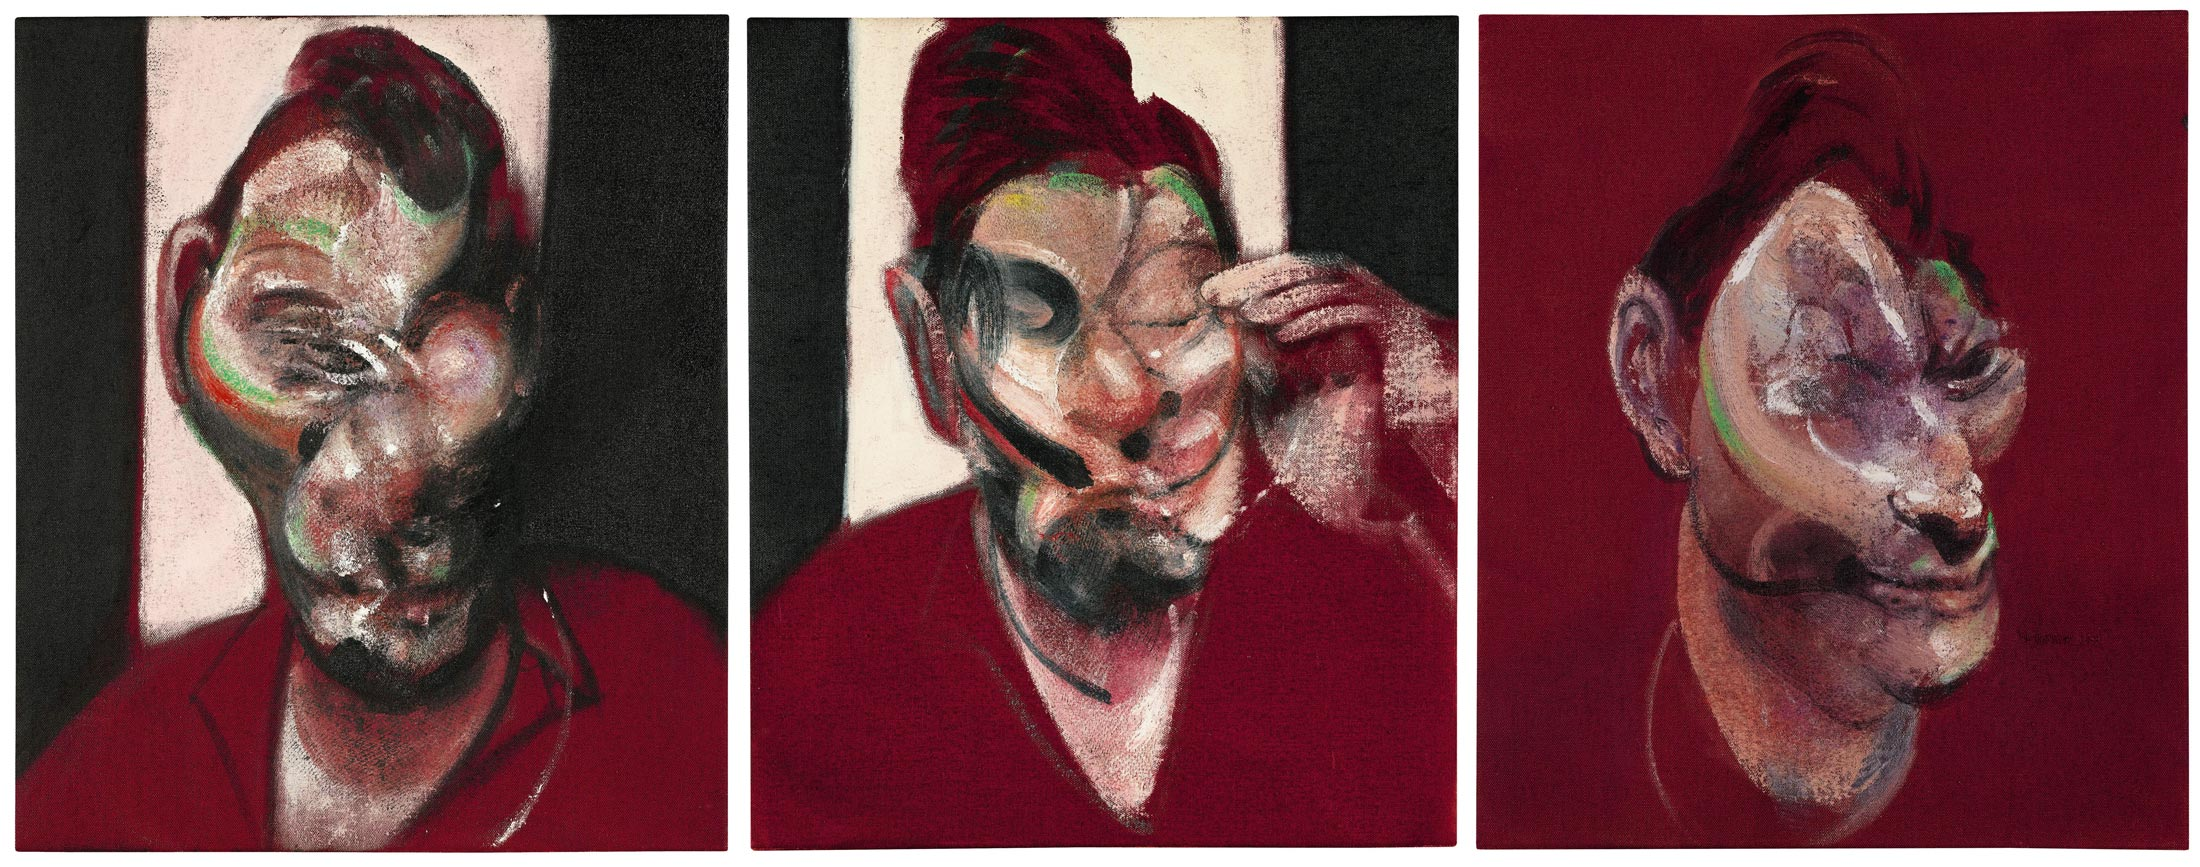 of studies francis bacon In 1944, one of the most devastating years of world war ii, francis bacon painted three studies for figures at the base of a crucifixion with this horrific triptych.